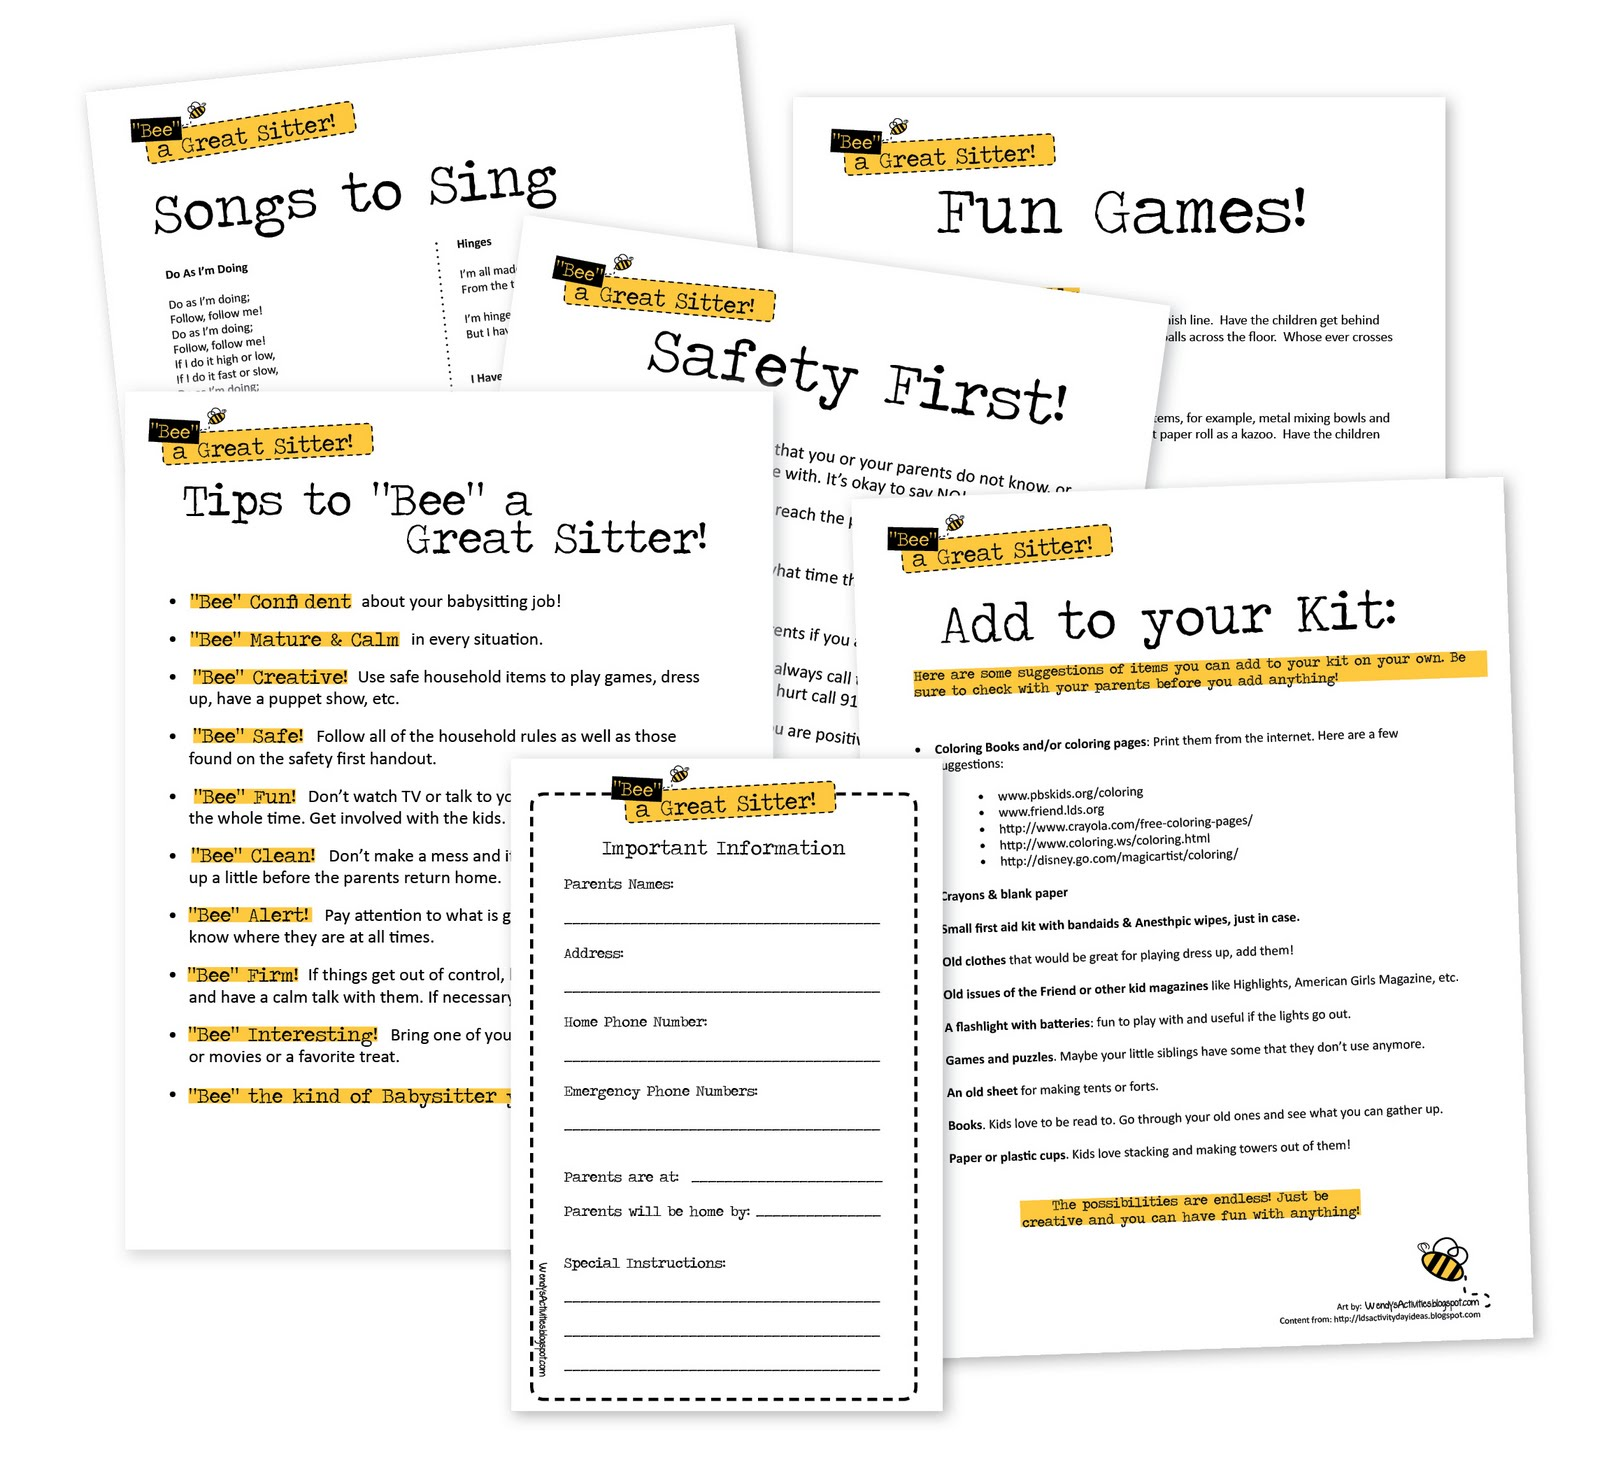 wendy s activities bee a great sitter to my bee a great sitter files via google docs click the links below handouts babysitting tips